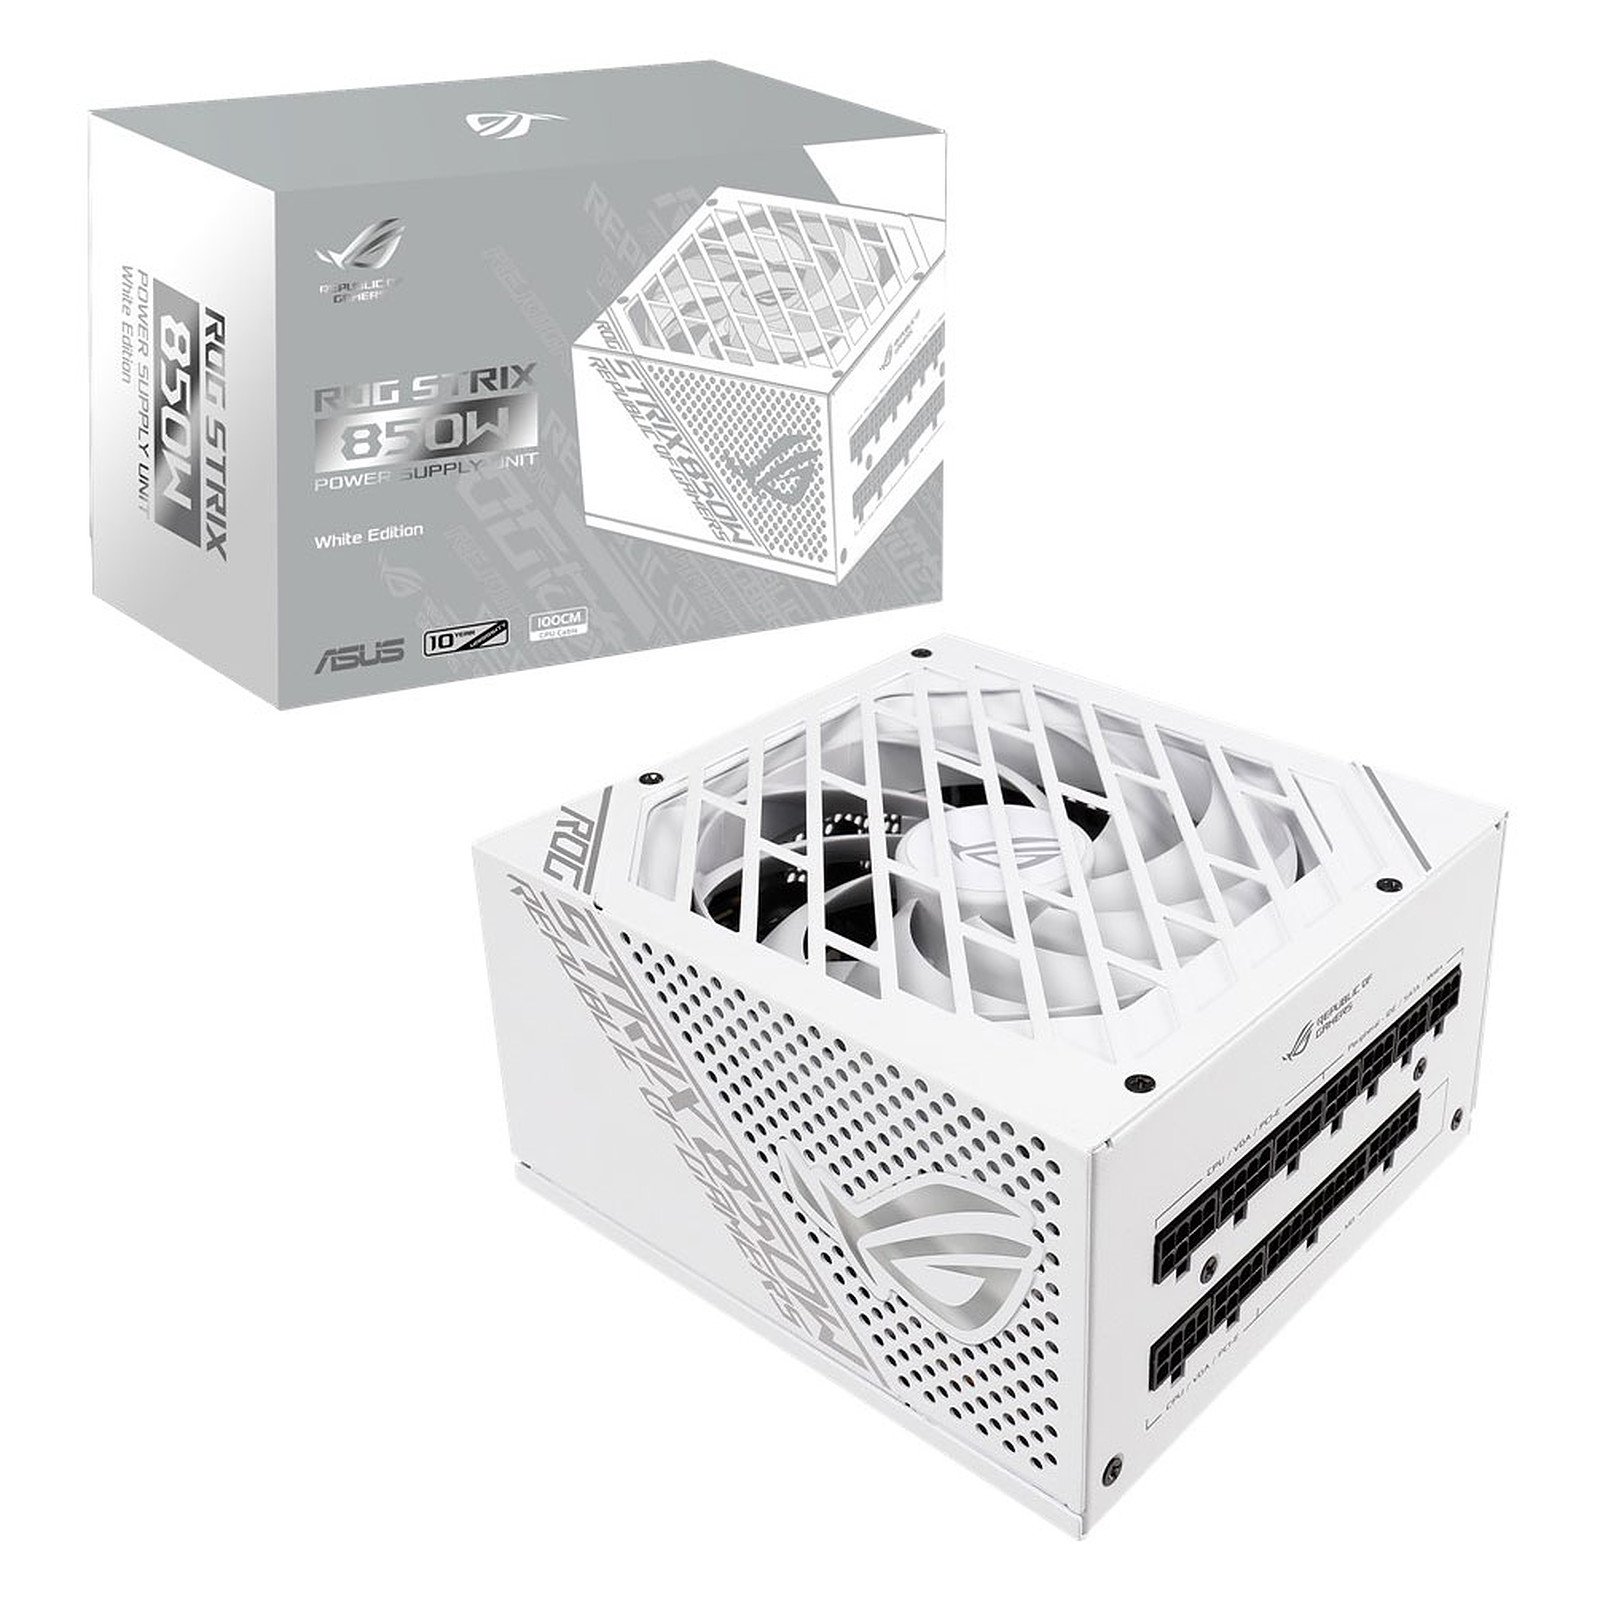 ASUS ROG-STRIX-850G-WHITE 80PLUS Gold White Edition